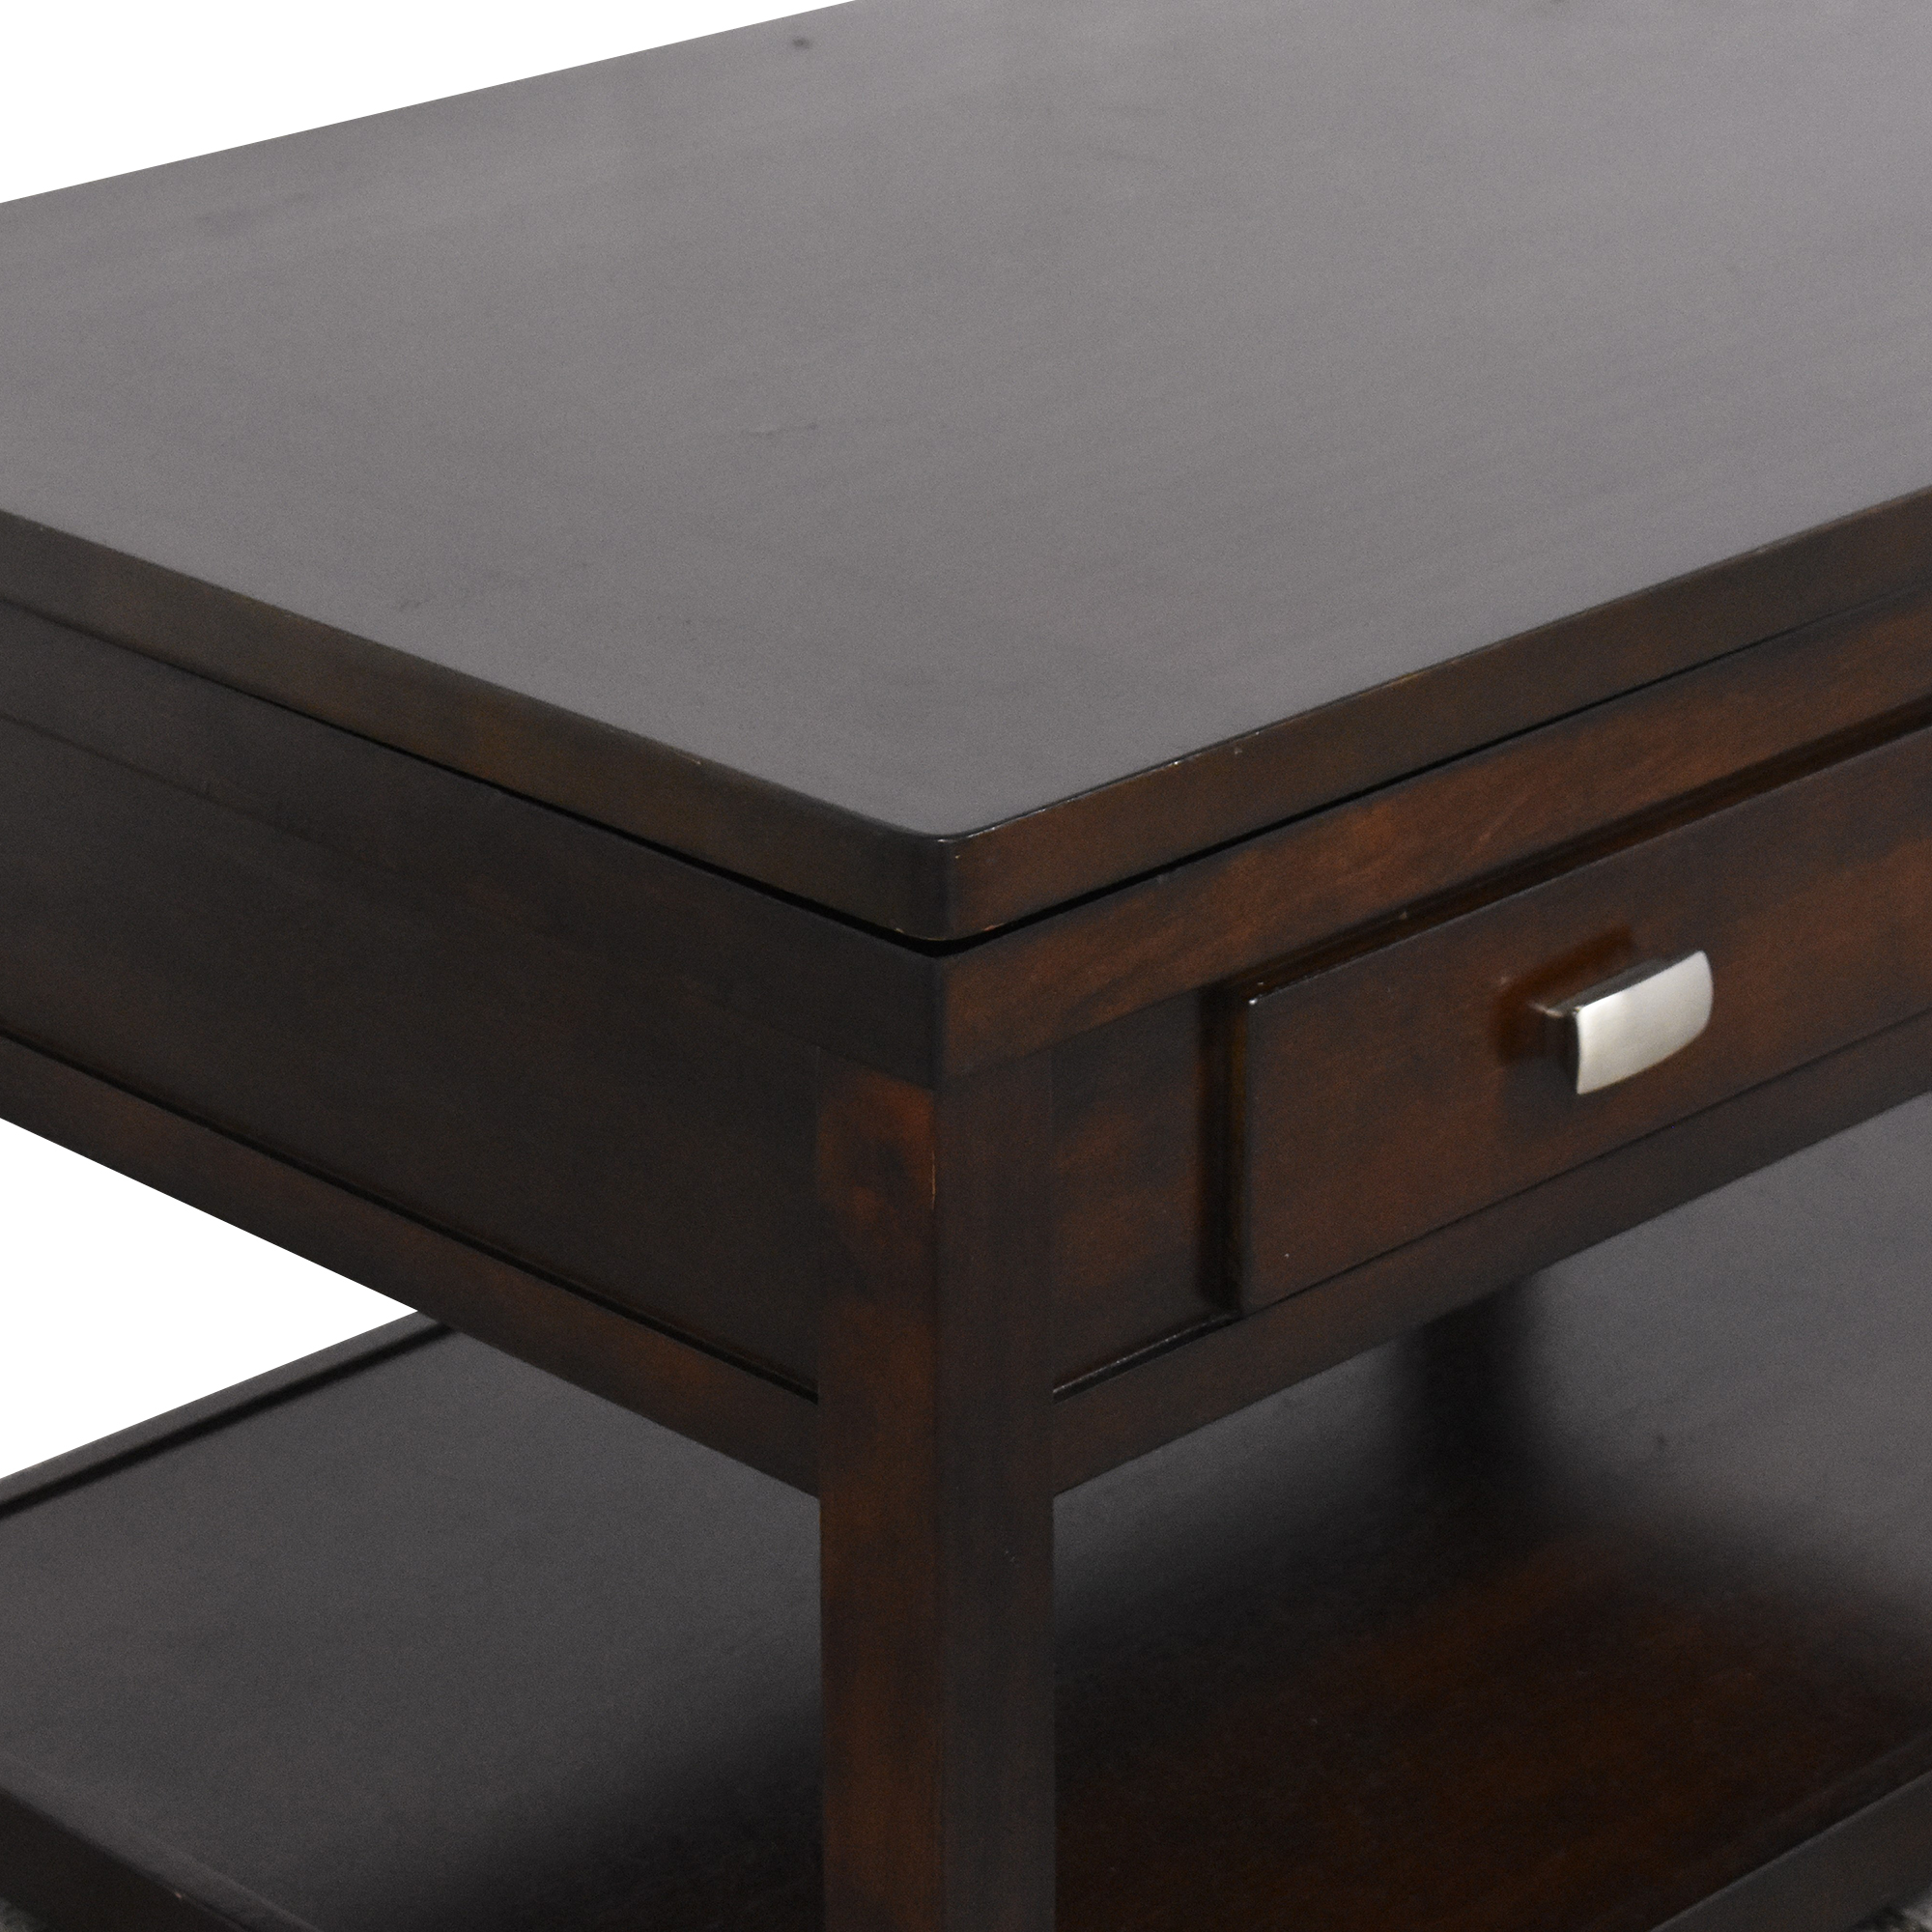 Ashley Furniture Ashley Furniture Hatsuko Lift Top Cocktail Table for sale